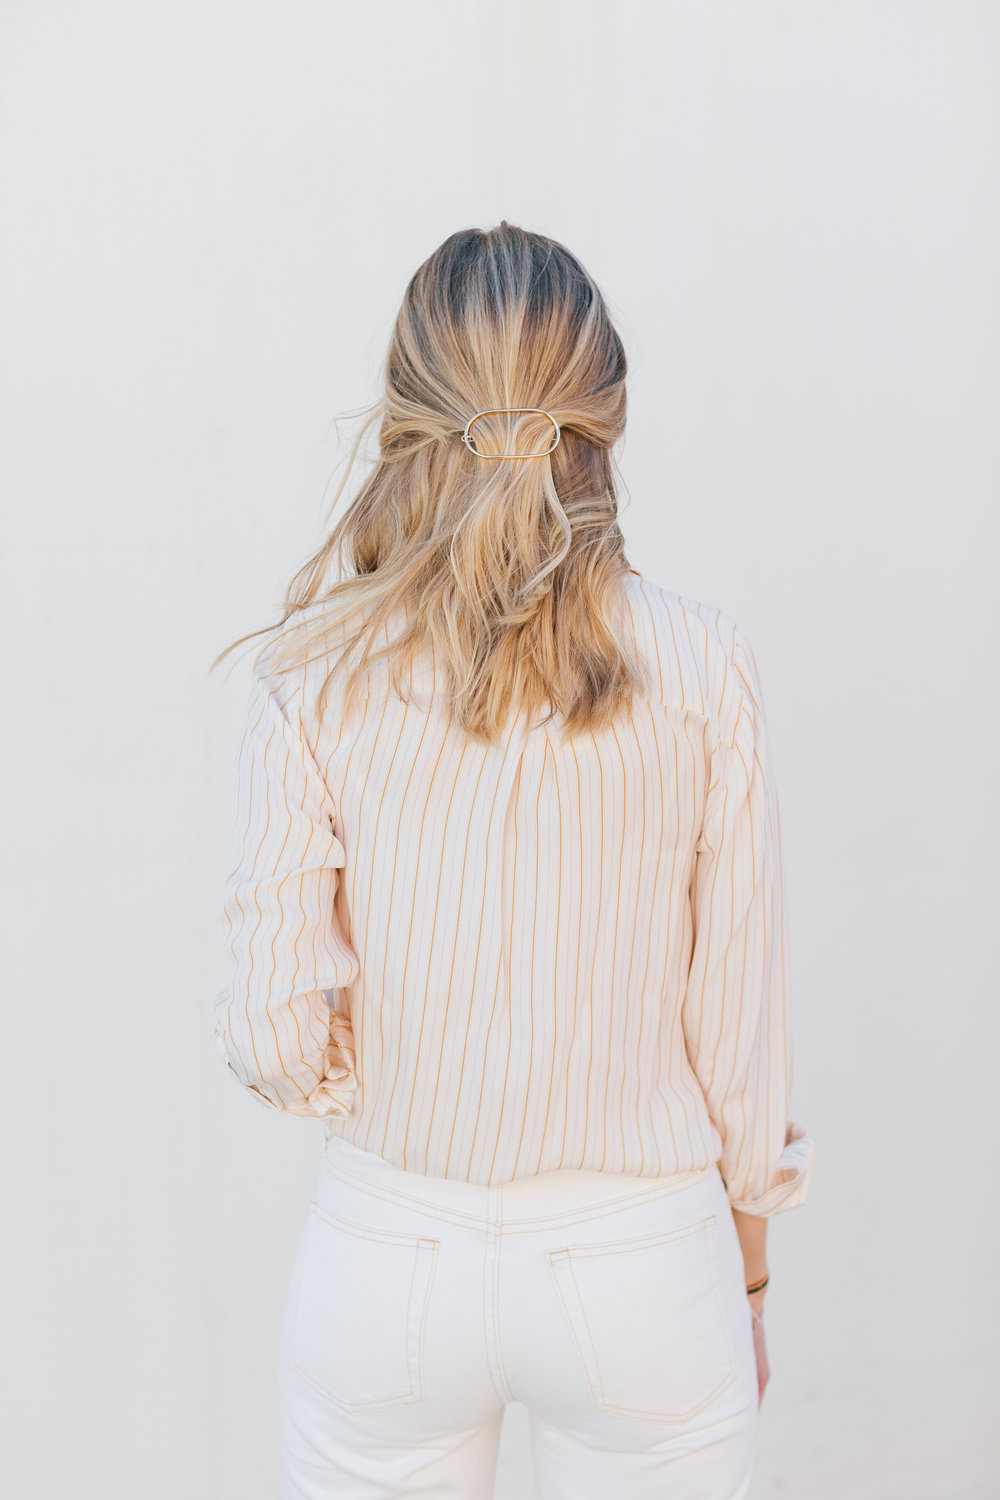 Hair Inspiration // How to style hair with a barrette for Spring and Summer // The Girl Guide // Stephanie Trotta